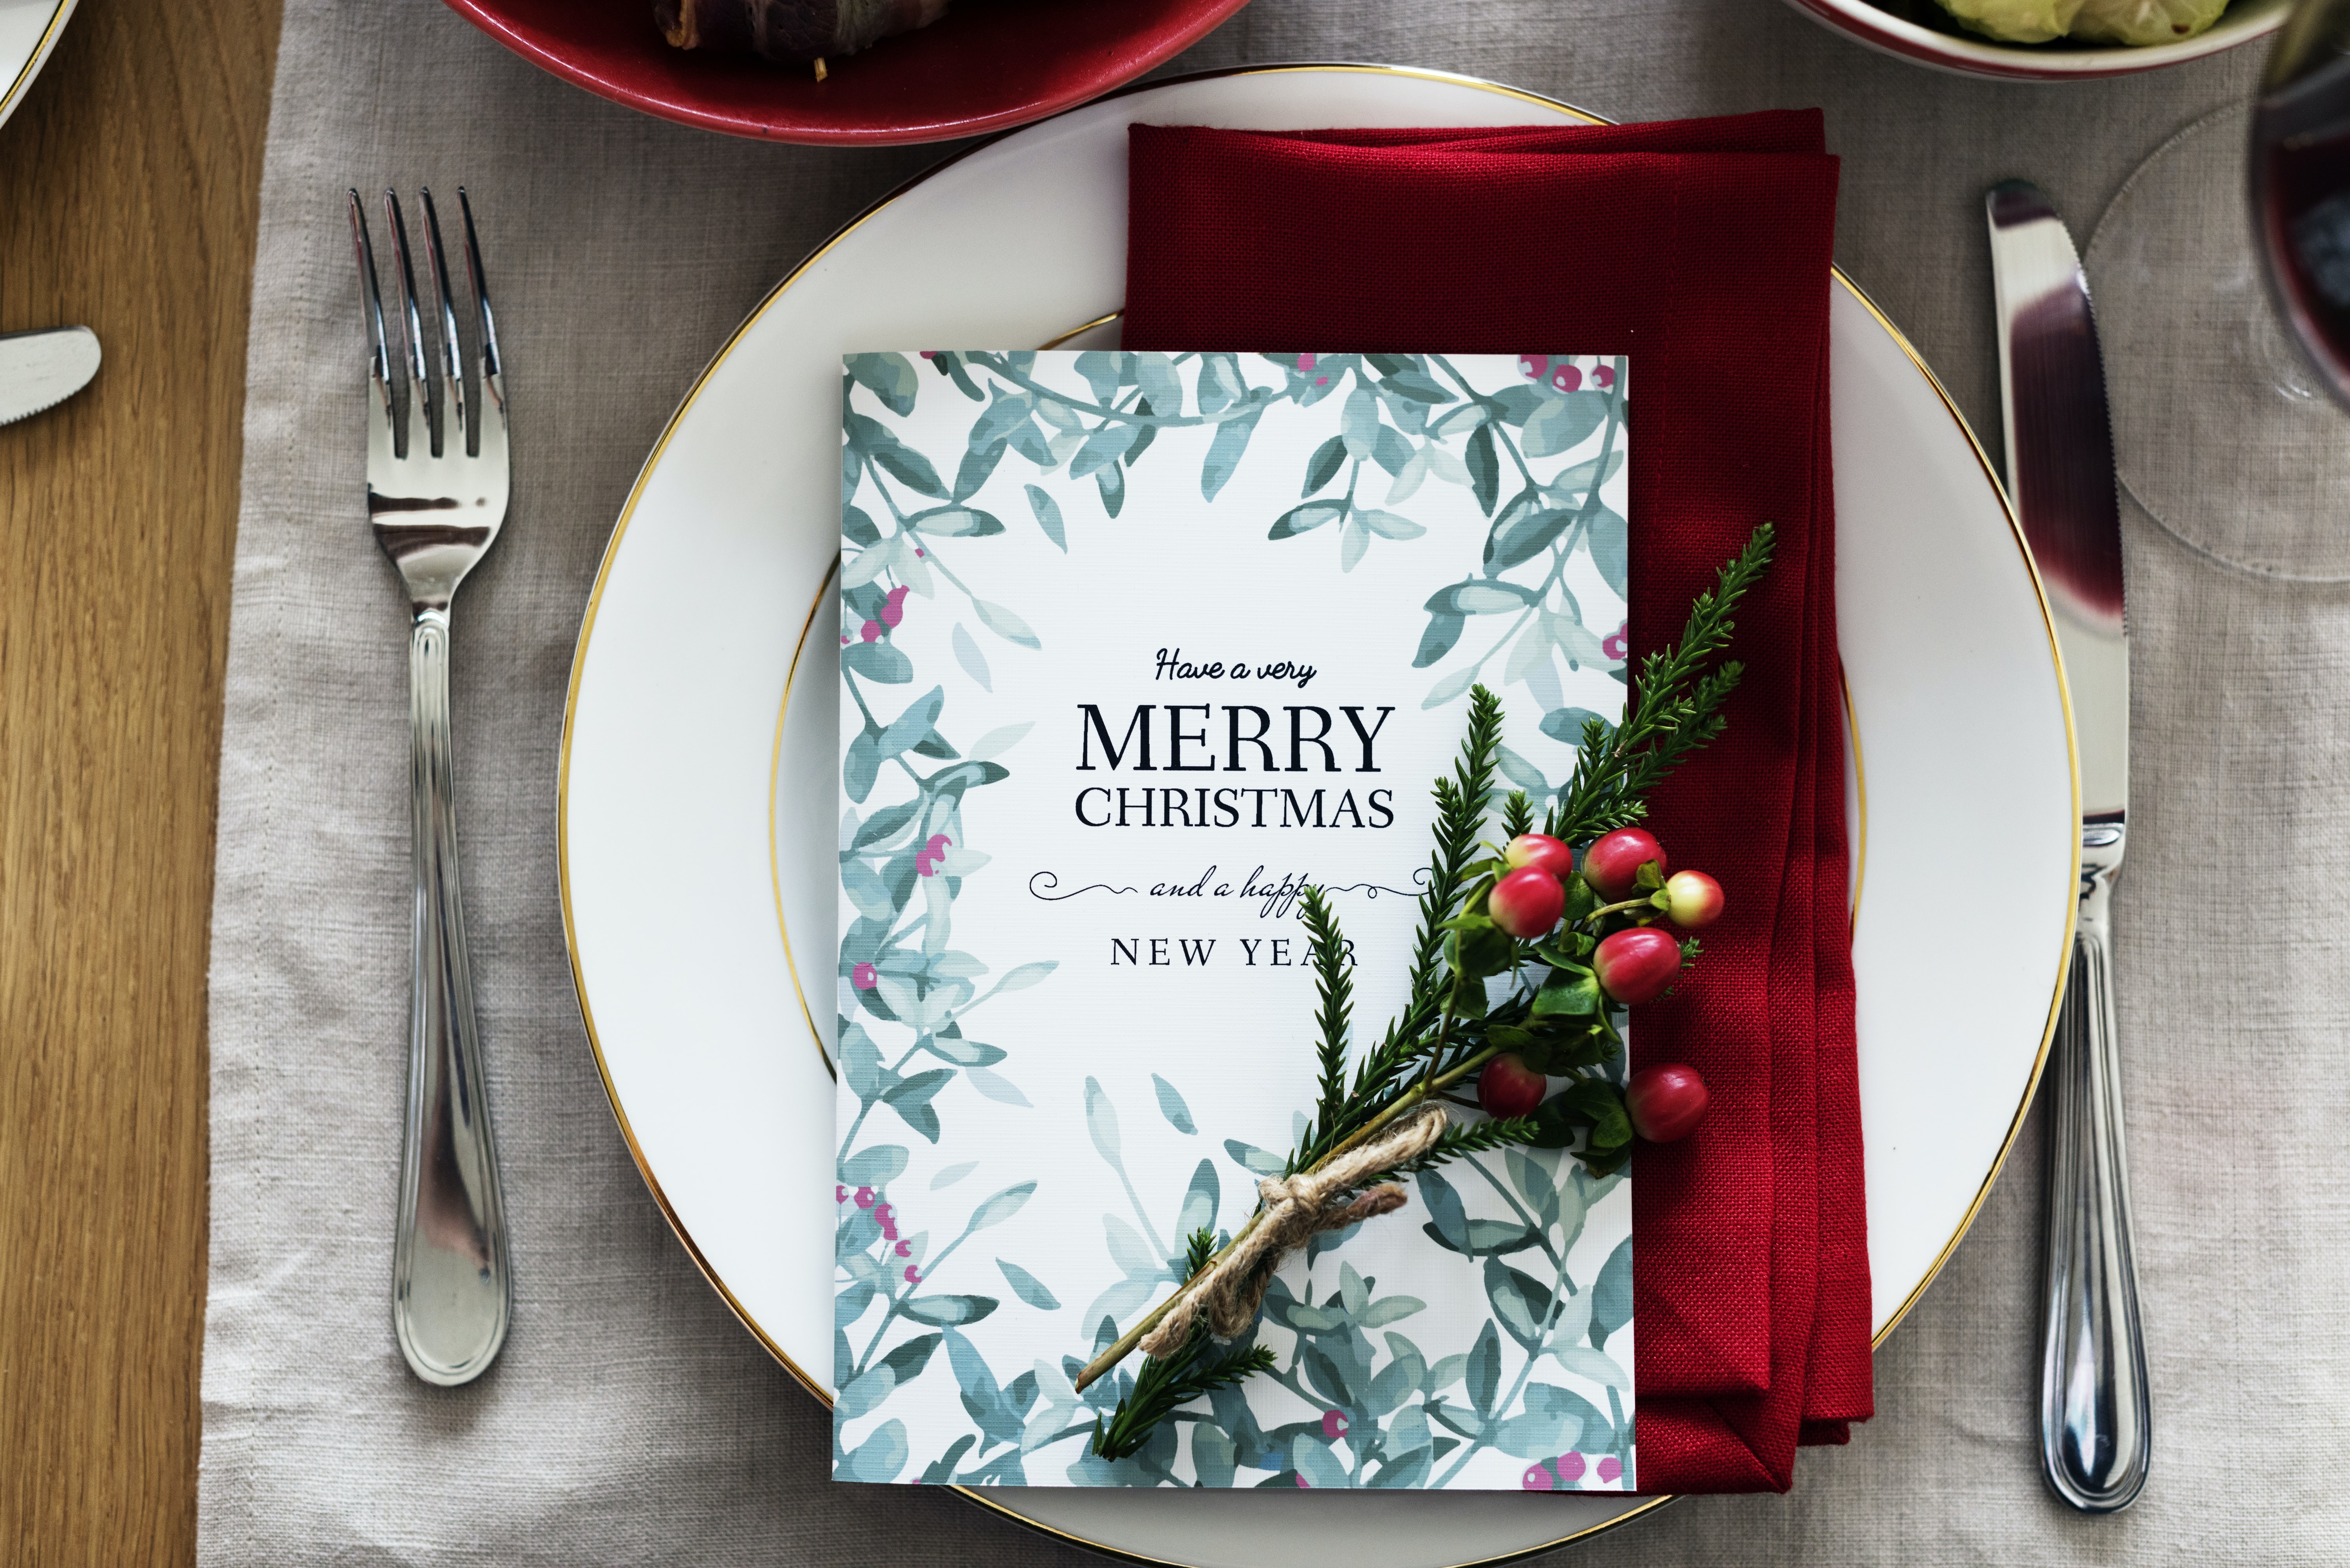 Merry Christmas book on plate with table napkin